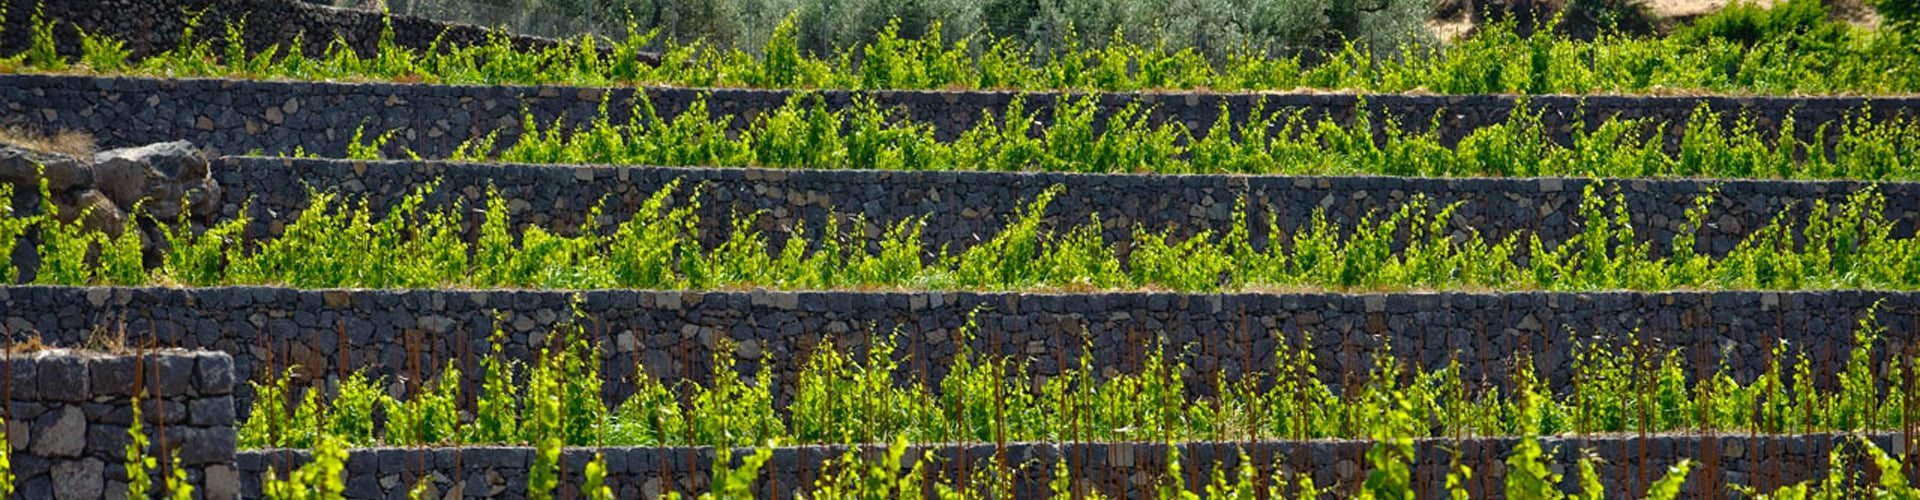 Pietradolce Vineyards Mount Etna